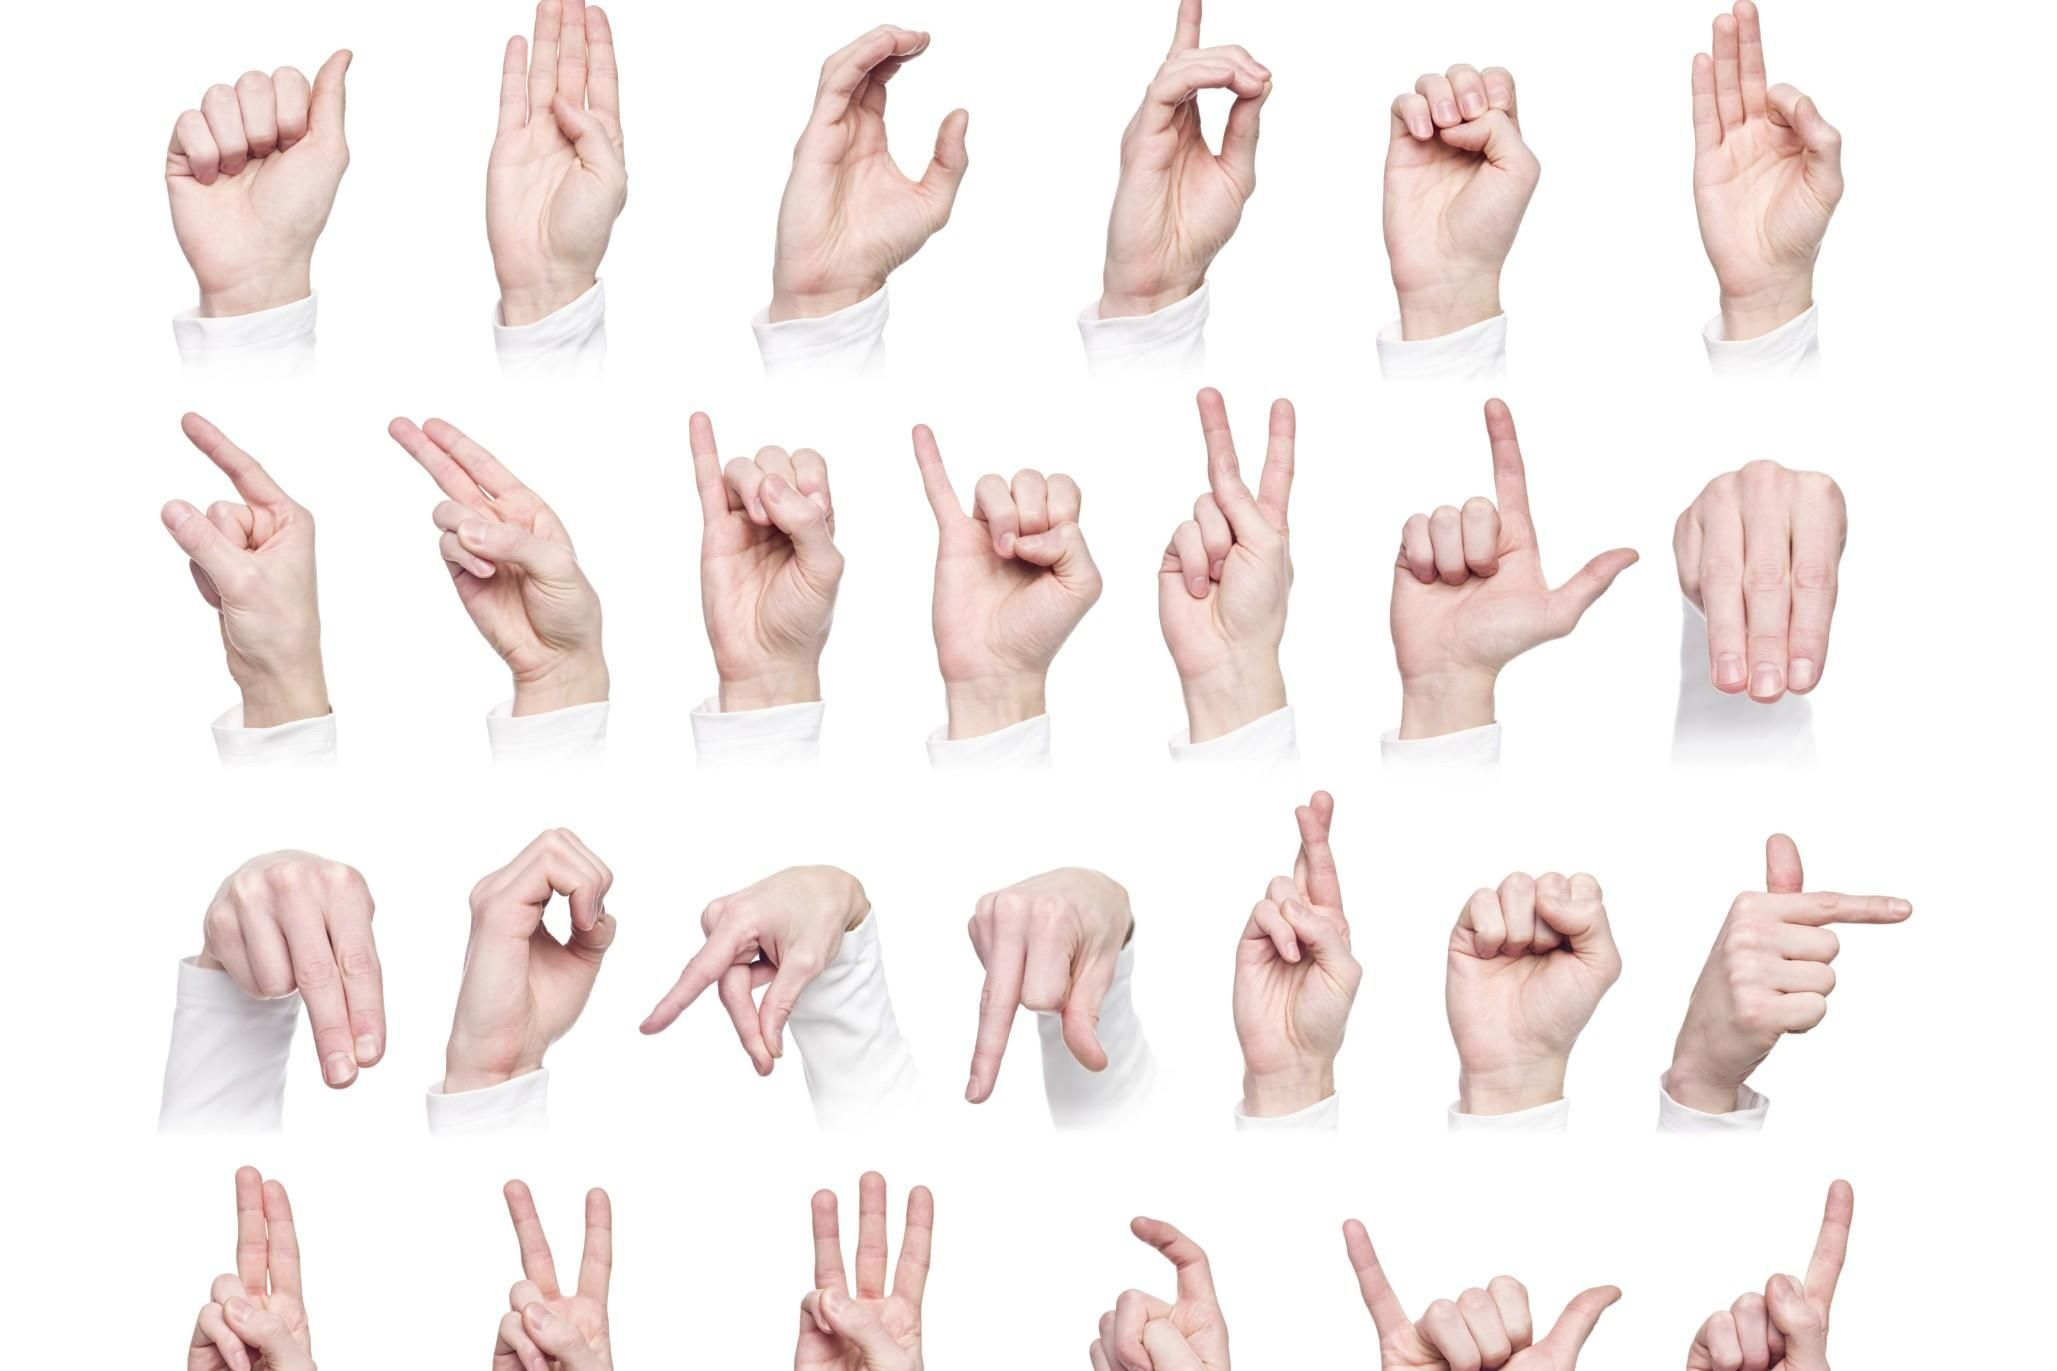 ASL Singles has free dating personals for women and men using American Sign Language.